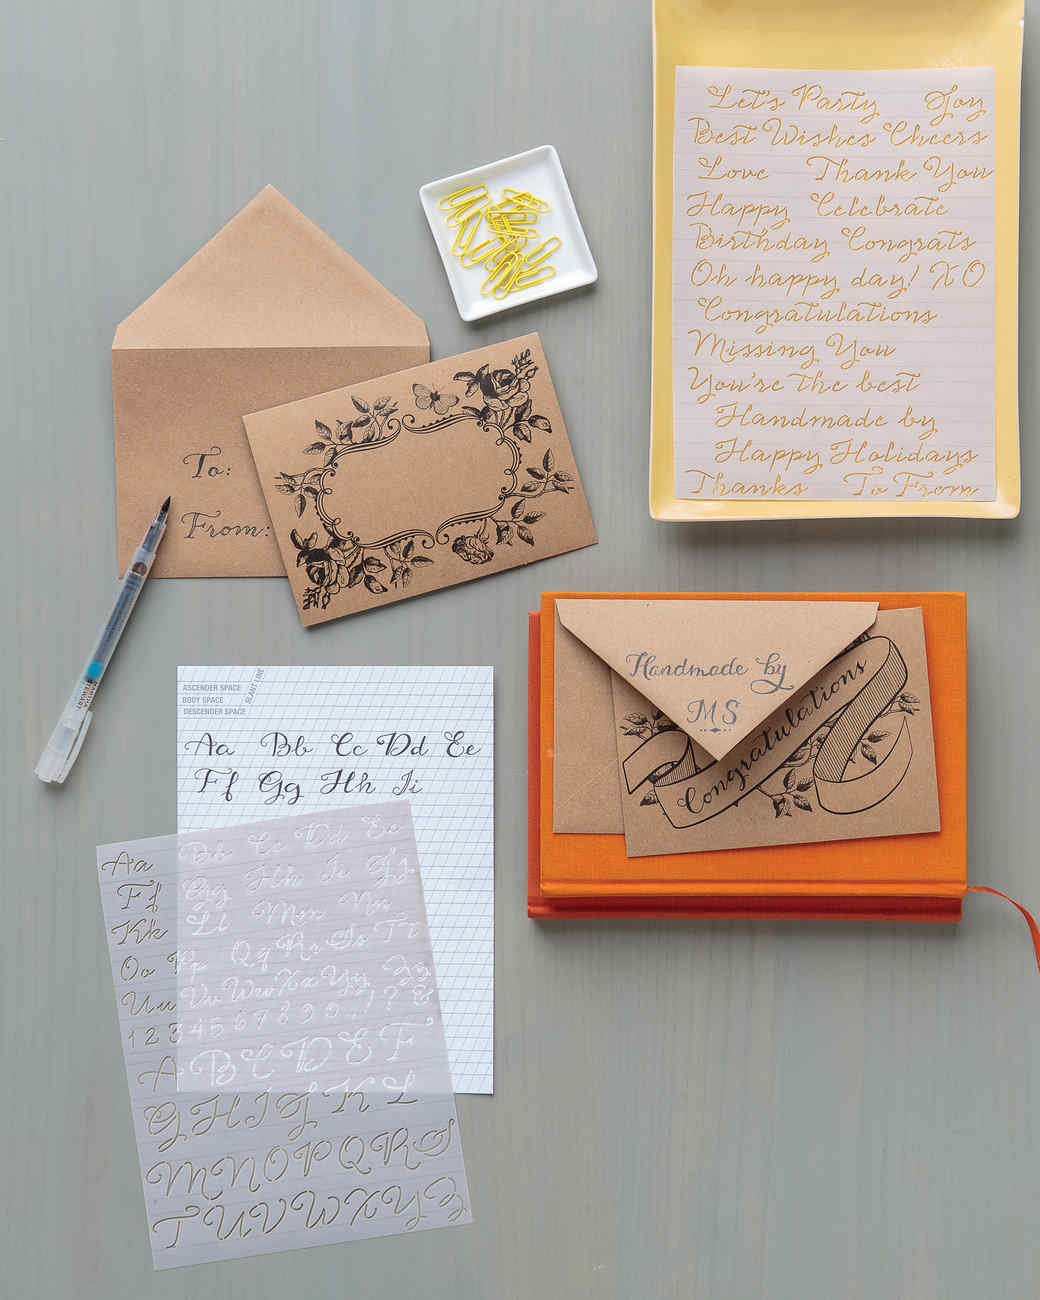 mscrafts-giftguide-diyenthusiast-lettering-1114.jpg